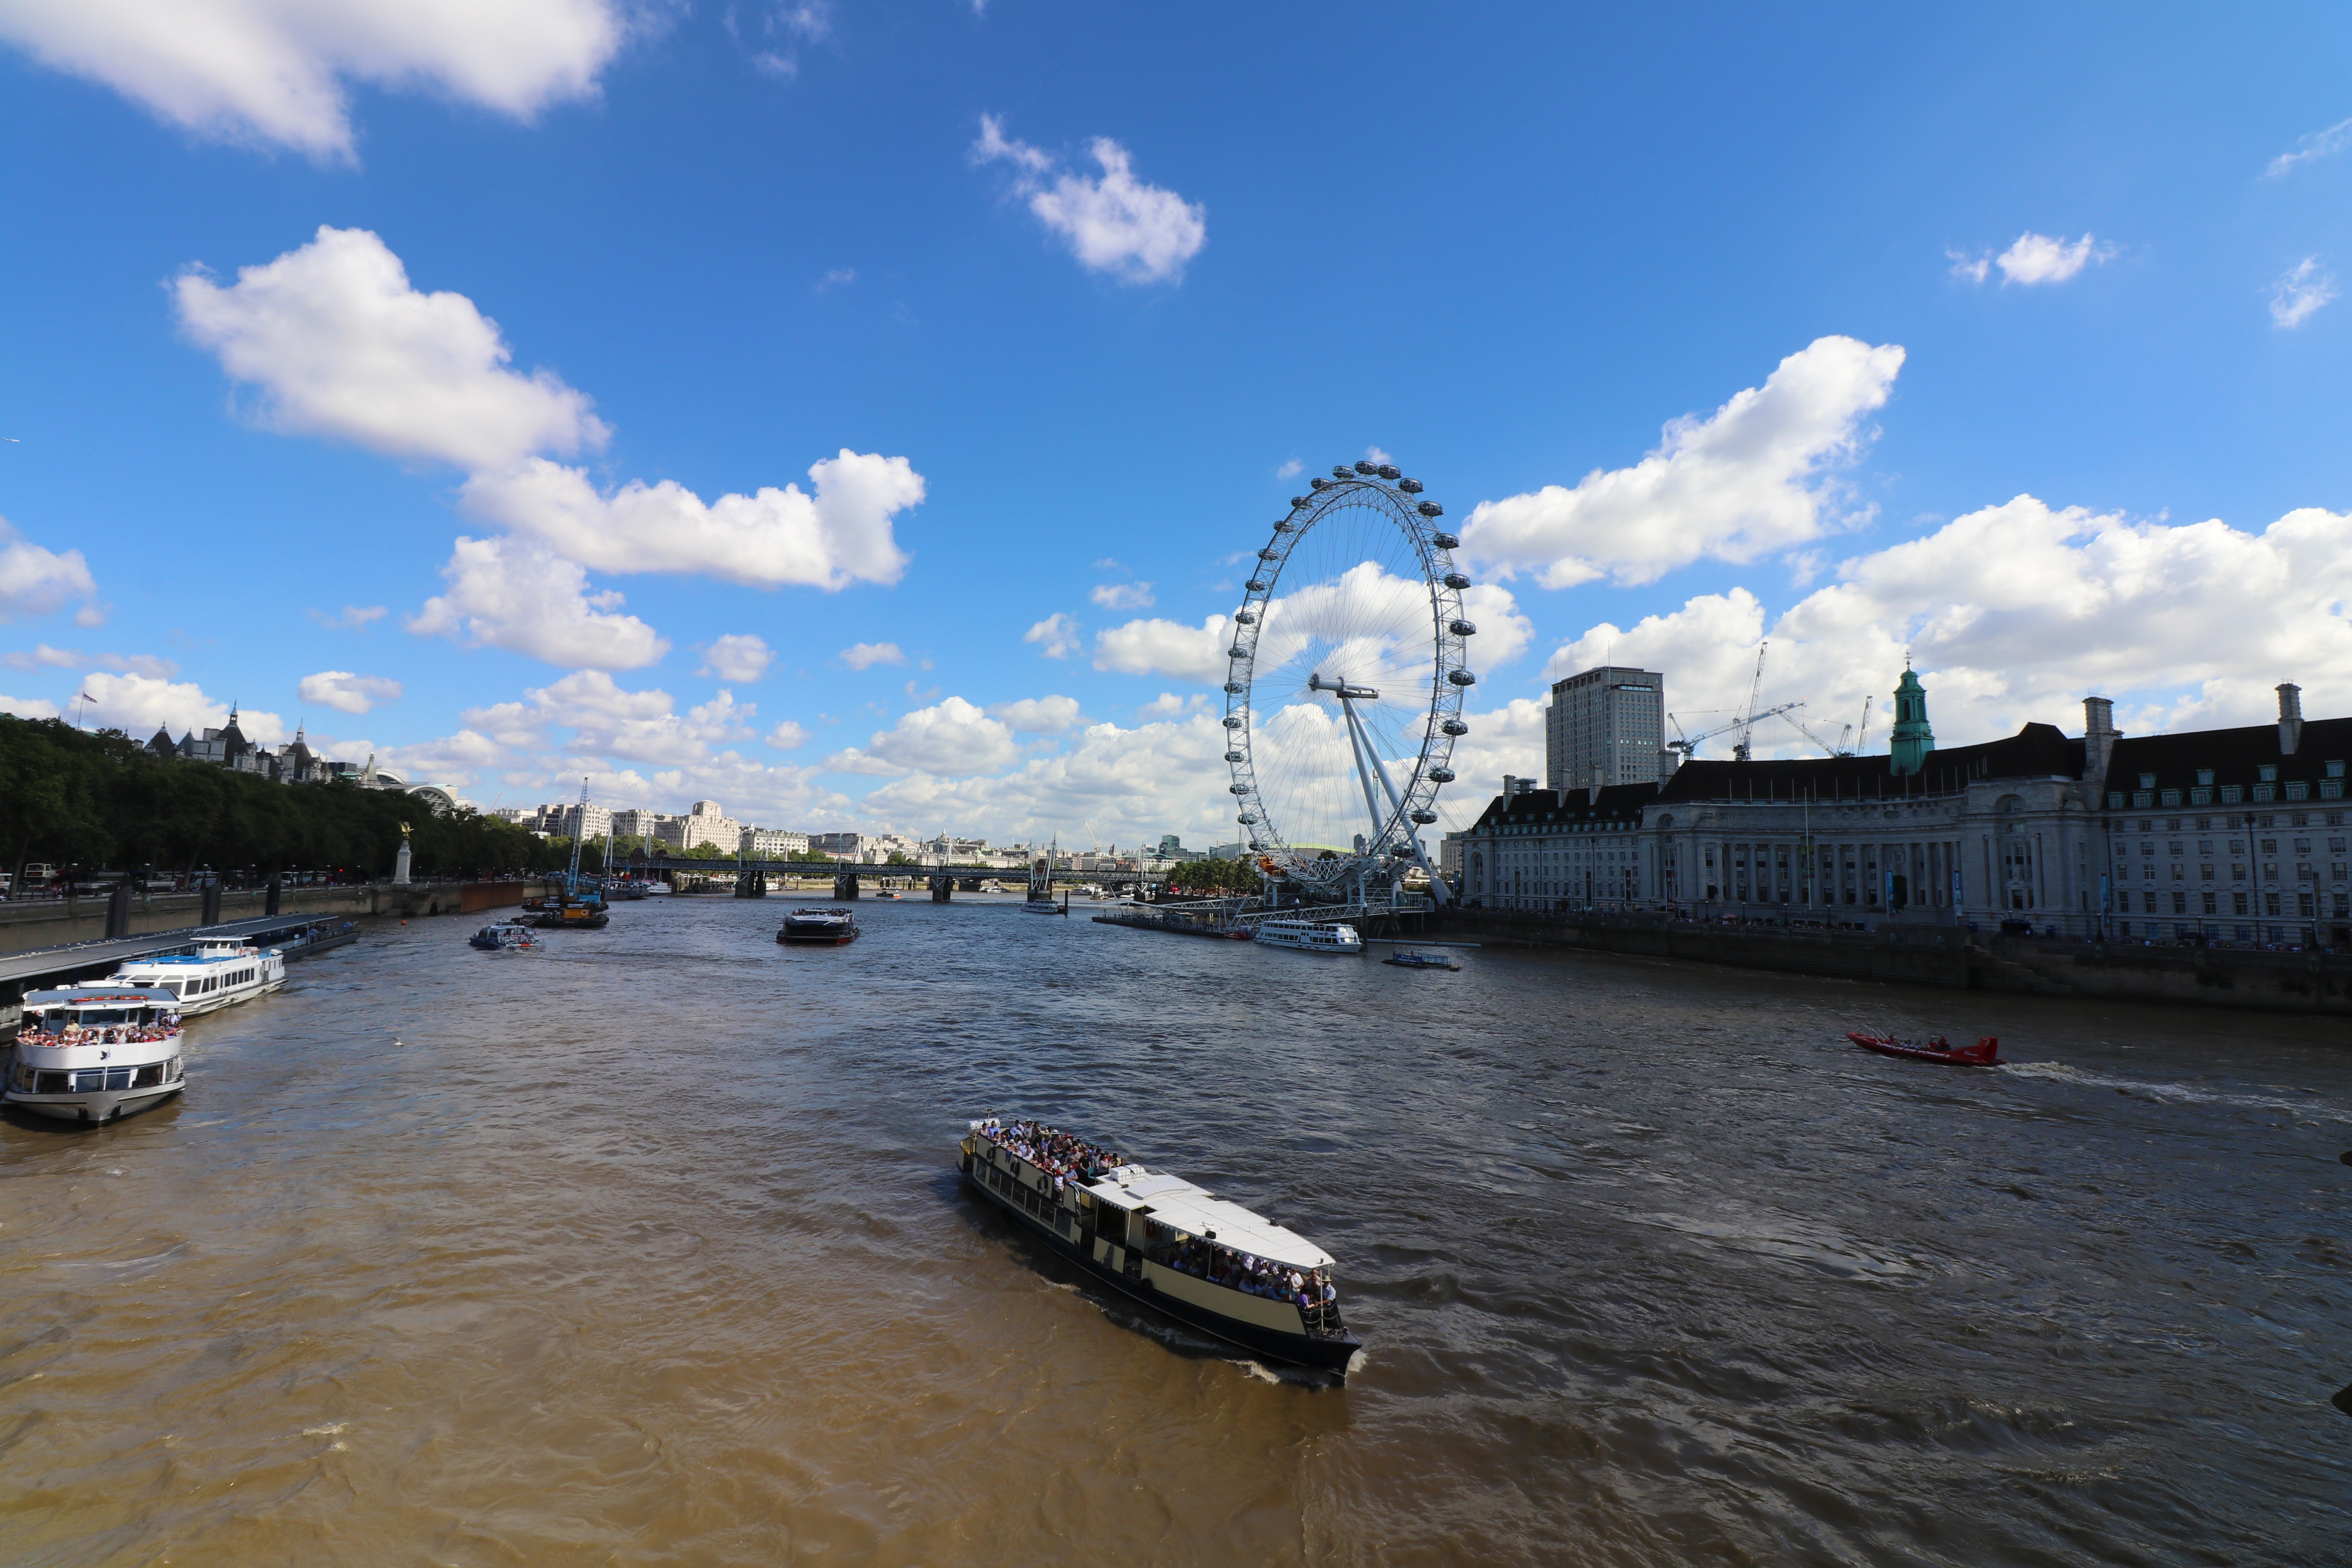 river-thames-and-london-eye-2016-copy